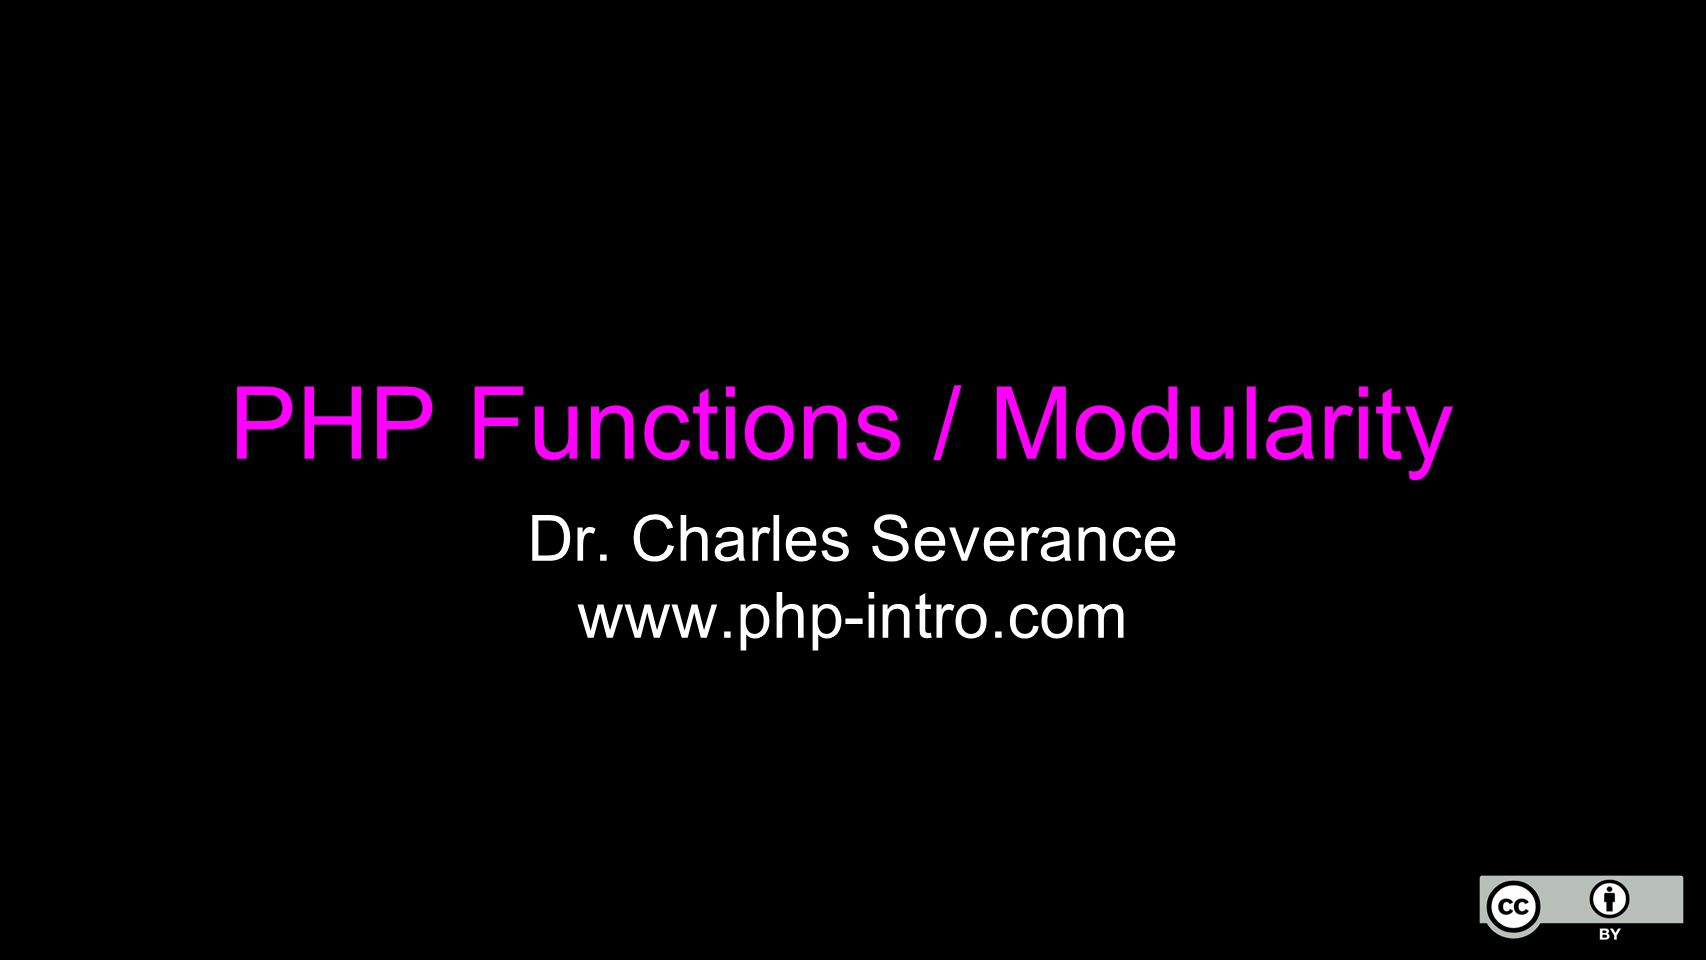 PHP Functions / Modularity Dr. Charles Severance www.php-intro.com